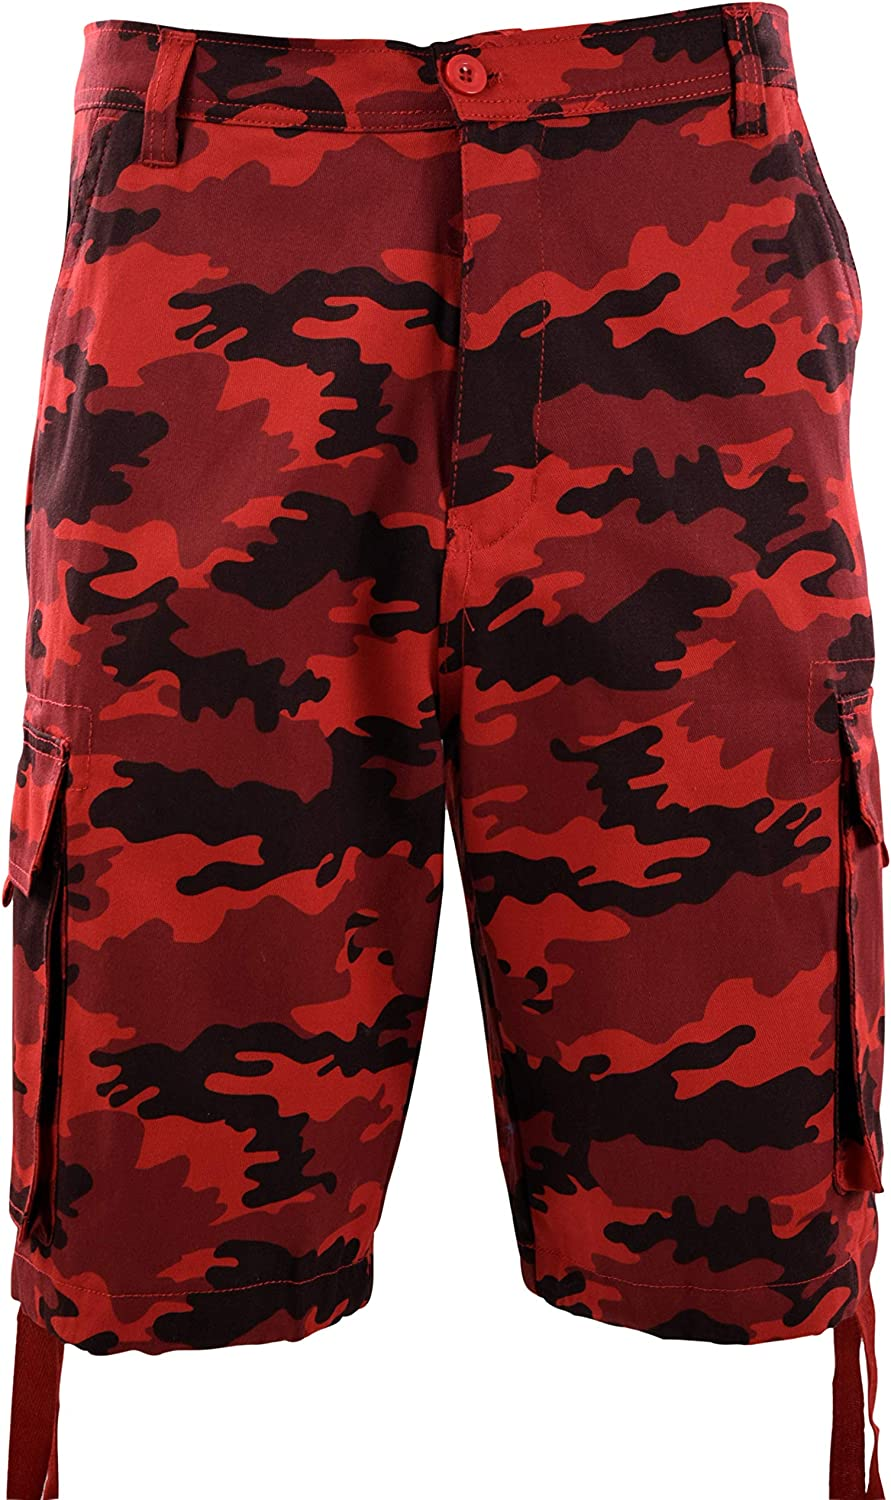 ChoiceApparel Mens Cargo and Non-Cargo Casual Shorts